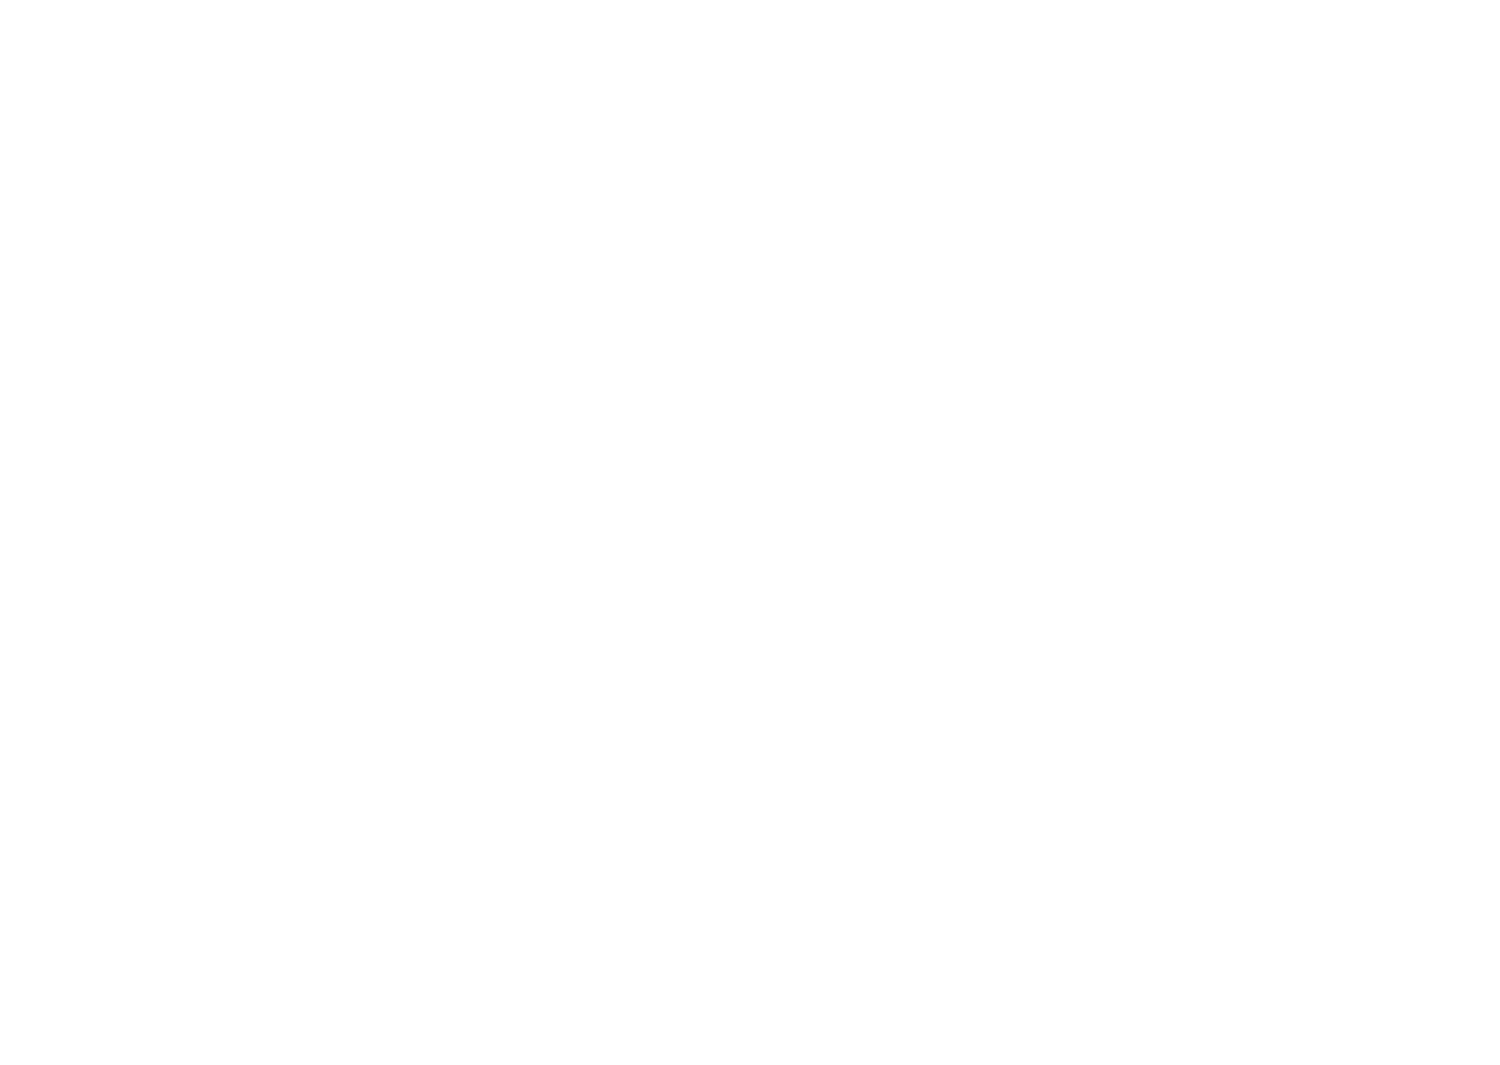 The Arc of Wichita County